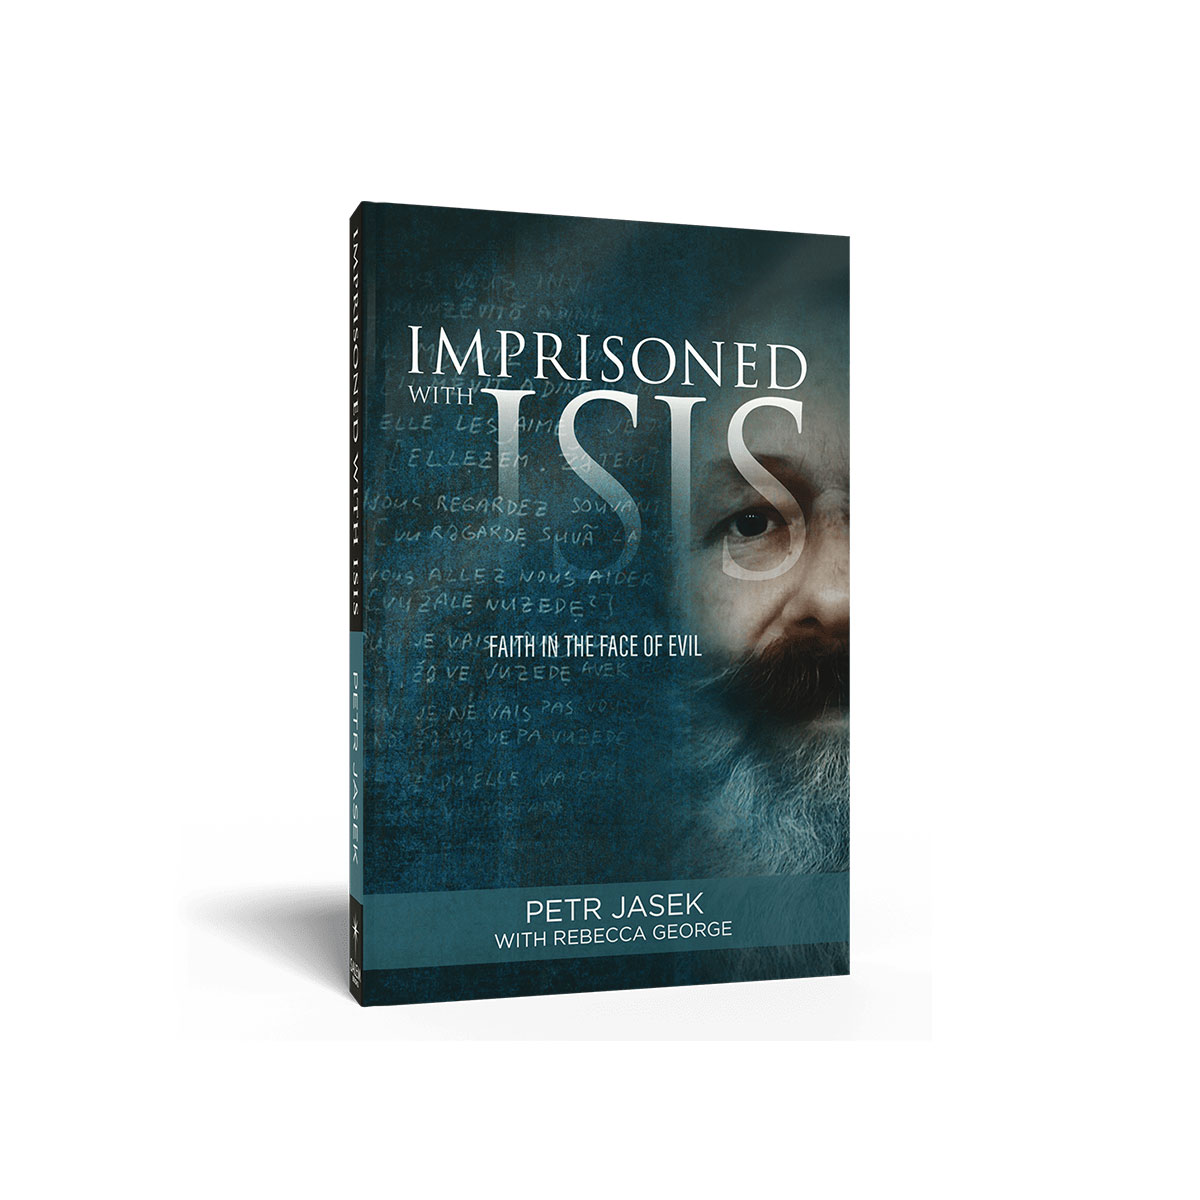 Request Your Complimentary Copy of Imprisoned with ISIS - The Voice of the Martyrs